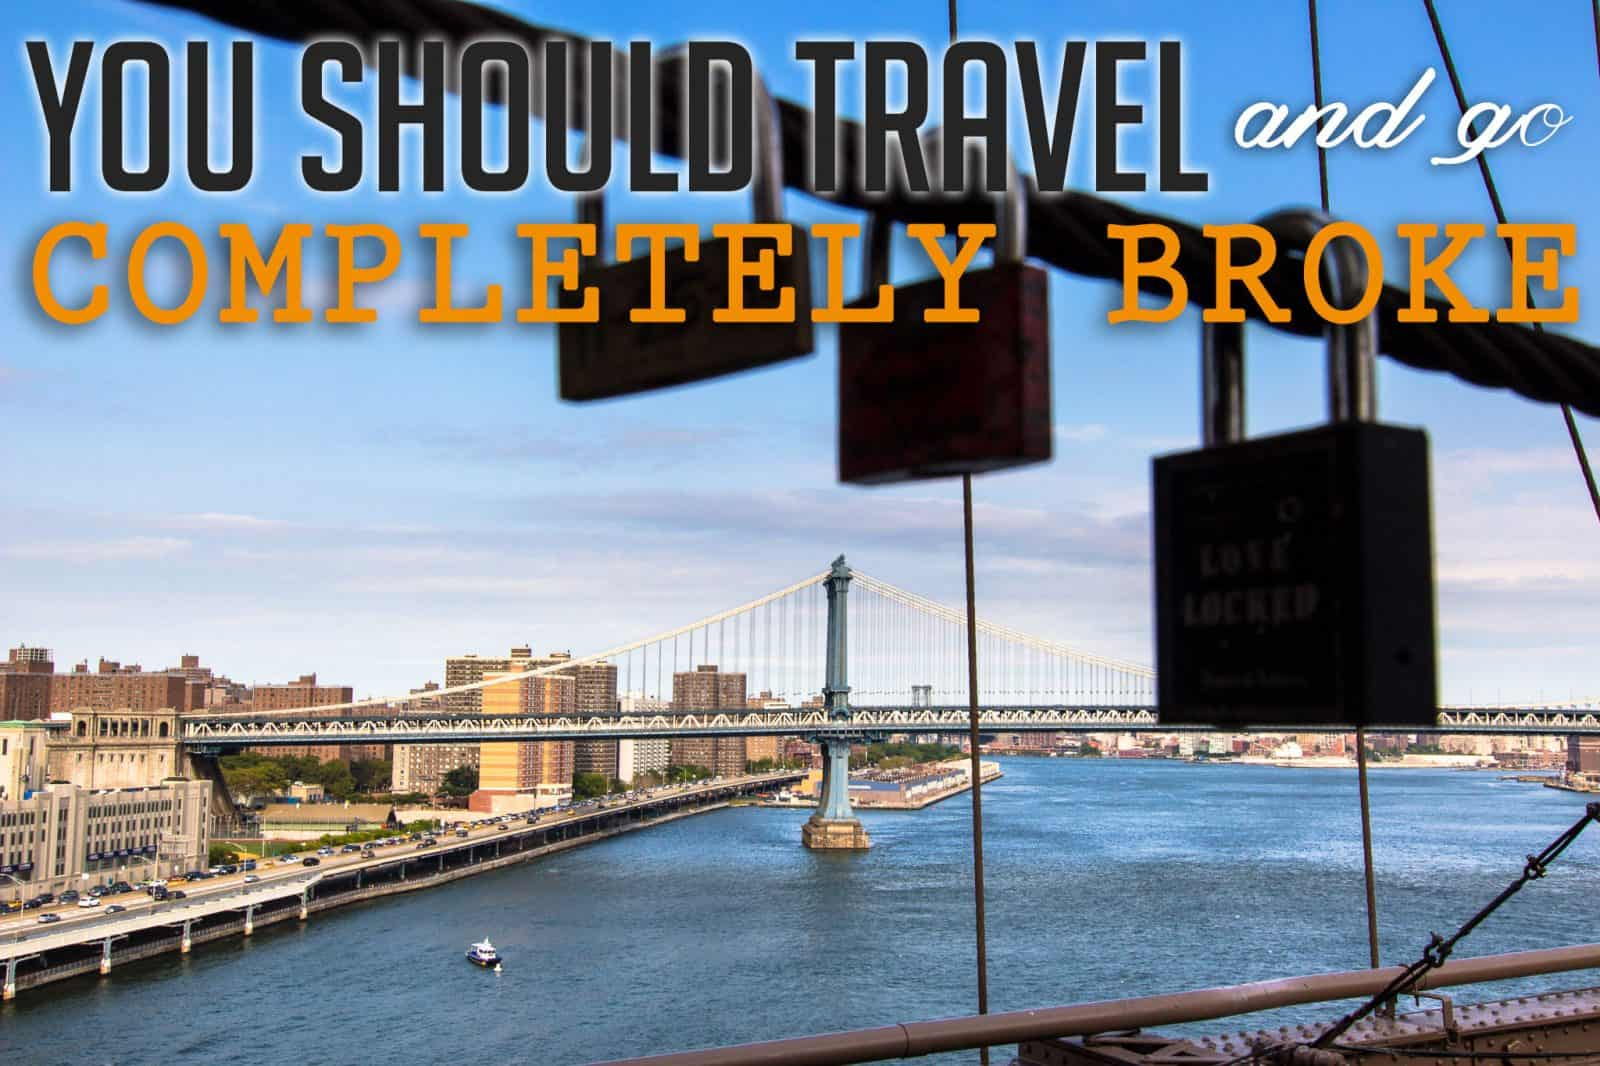 You Should Travel and Go Completely Broke